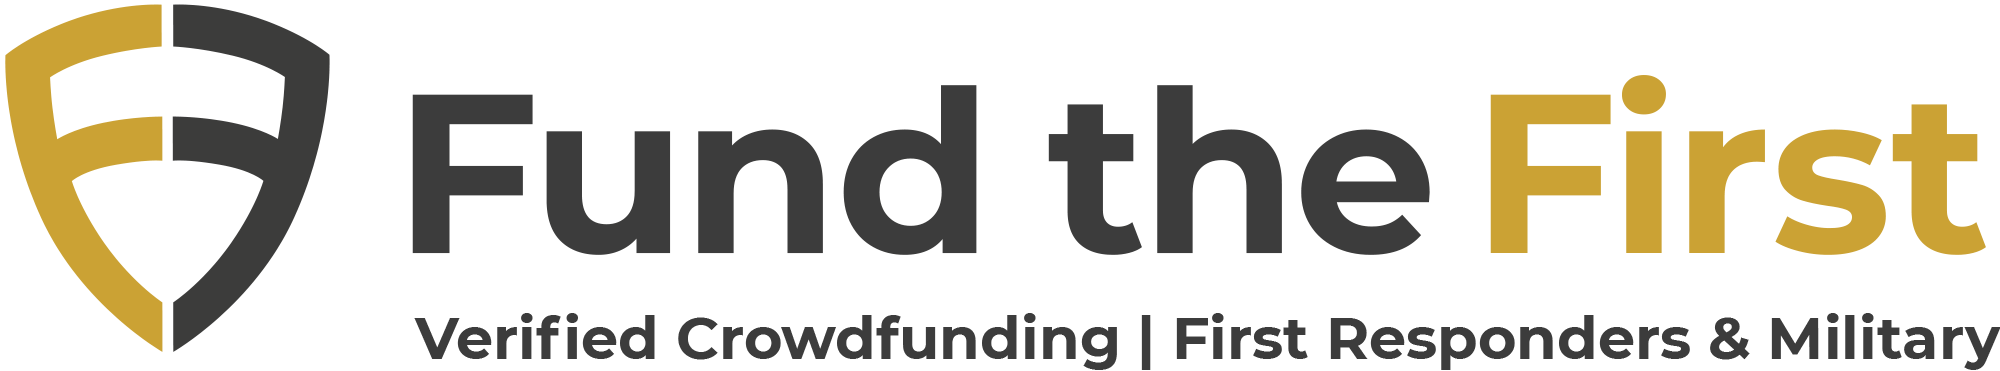 crowdfunding for first responders and military